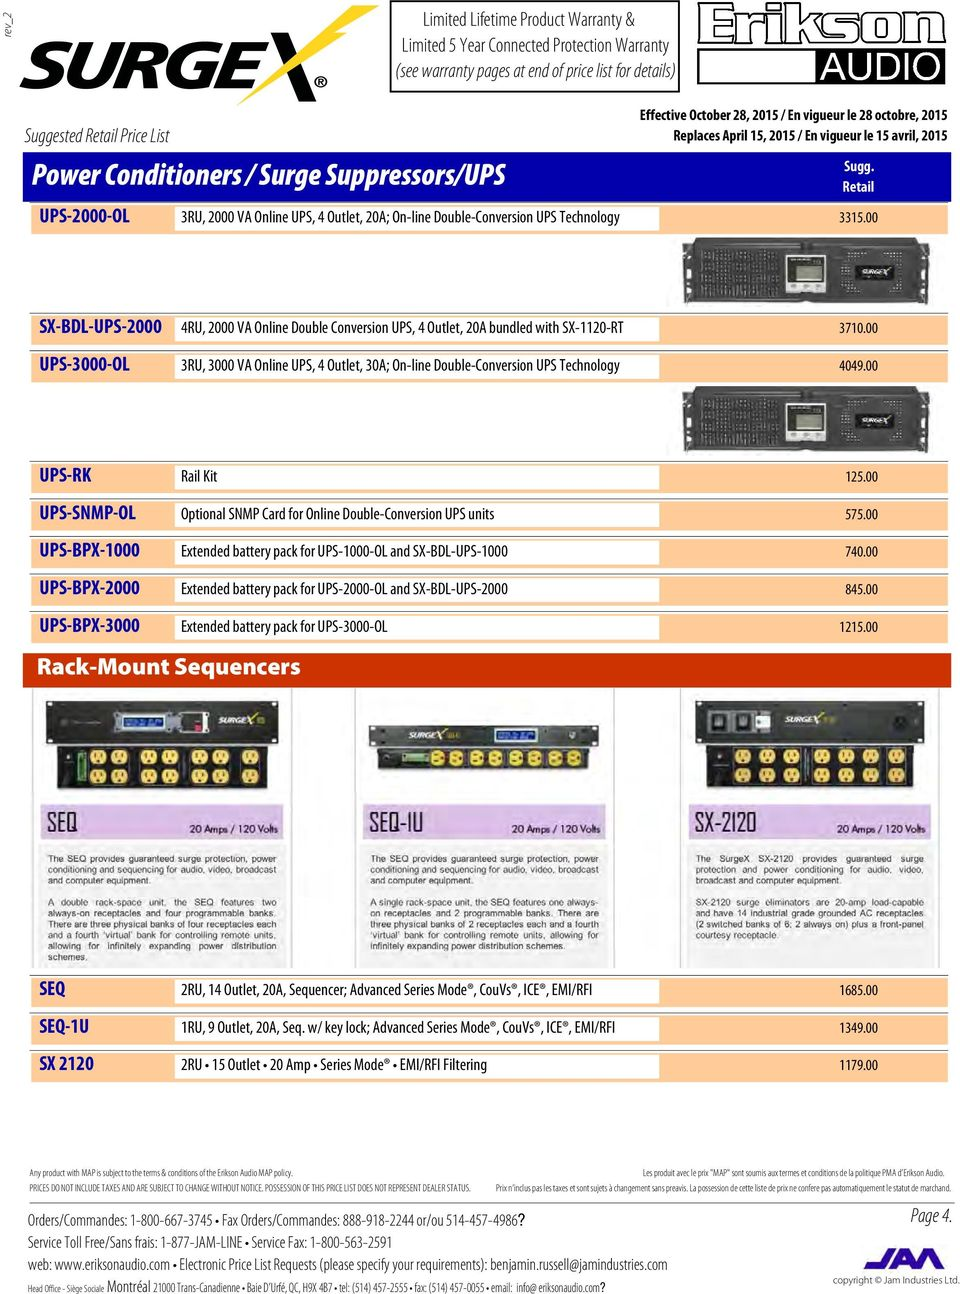 00 UPS-3000-OL 3RU, 3000 VA Online UPS, 4 Outlet, 30A; On-line Double-Conversion UPS Technology 4049.00 UPS-RK Rail Kit 125.